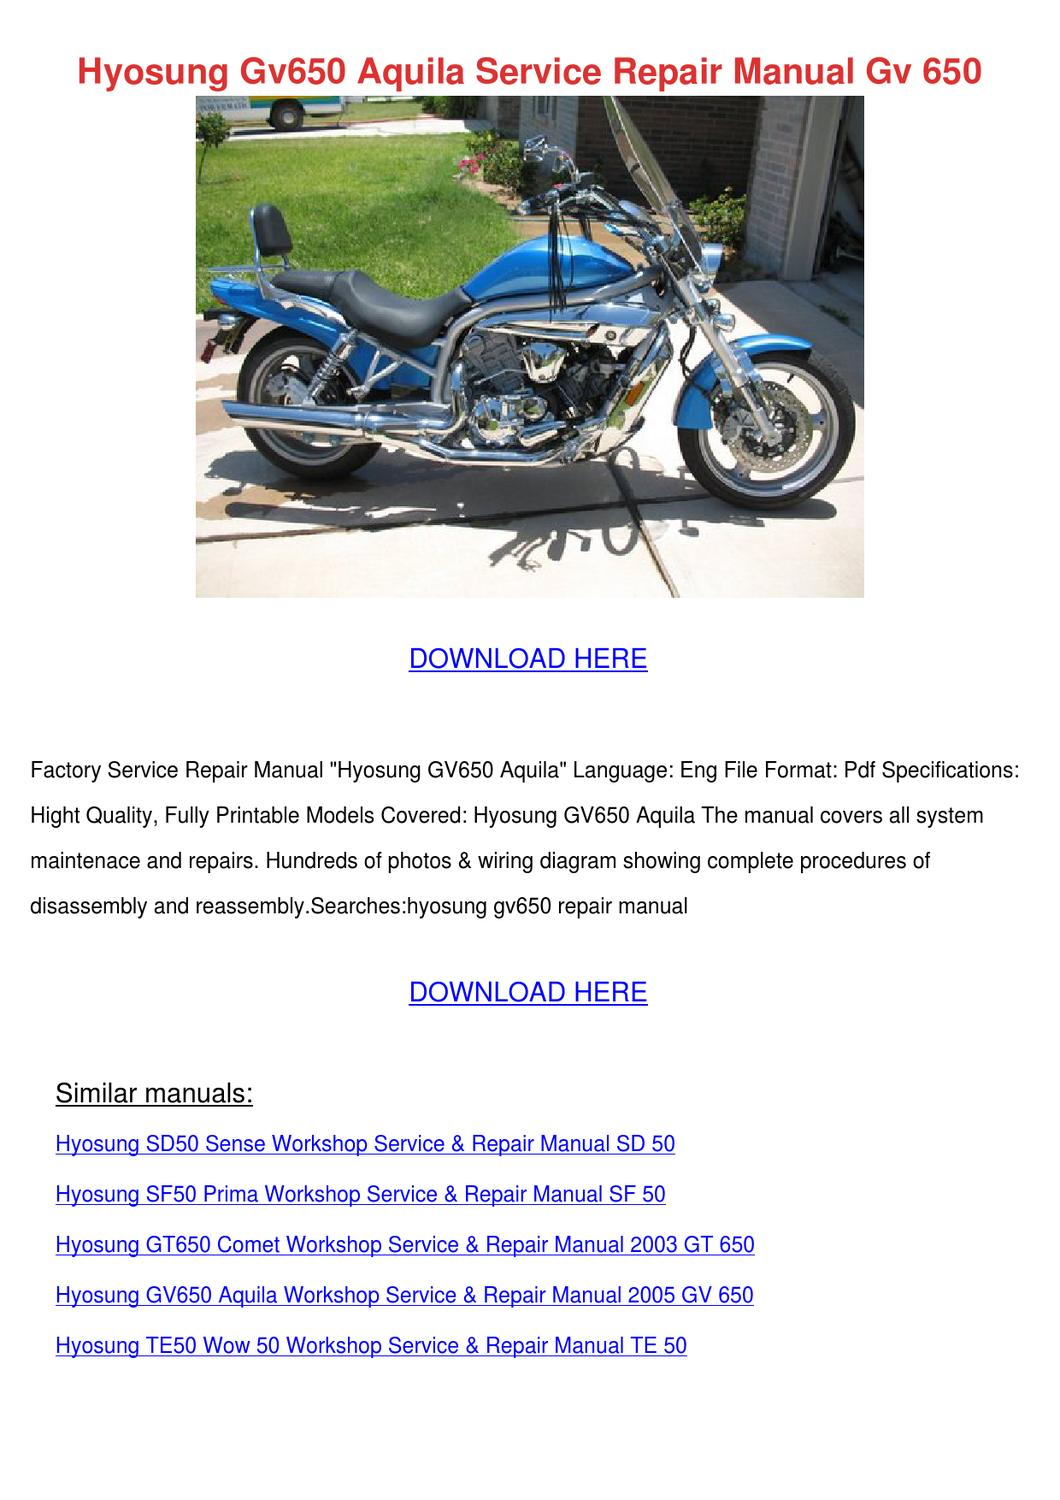 Hyosung Gv650 Aquila Service Repair Manual Gv by Cherelle Mcglathery - issuu